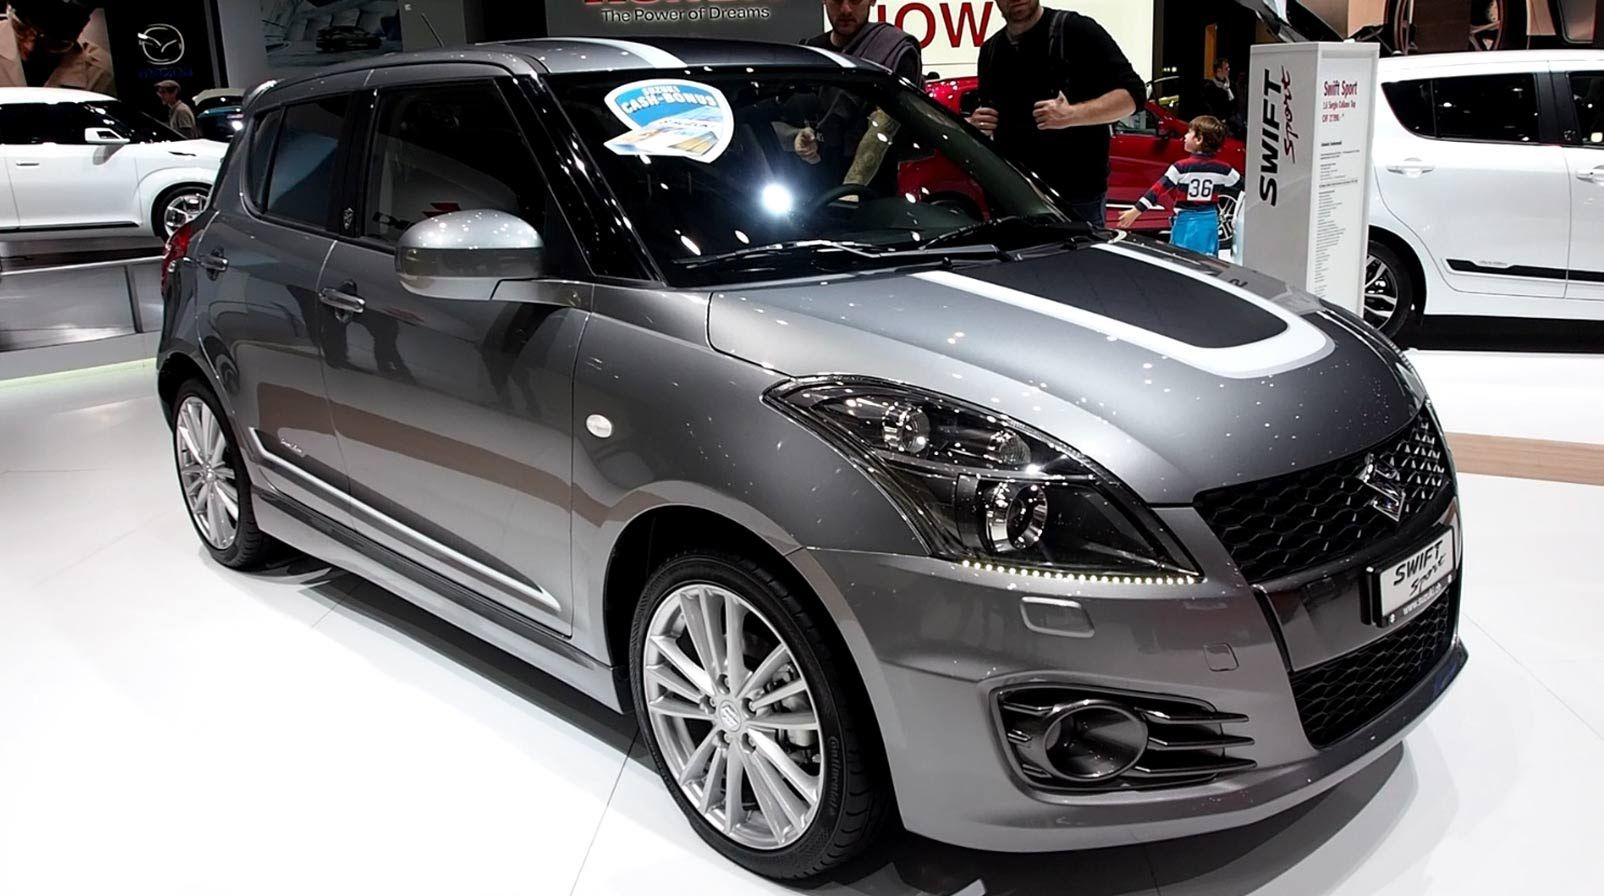 Suzuki swift sport 2013 pictures to pin on pinterest - 2015 Suzuki Swift Sport 1 6 Sergio Cellano Top Exterior And Interior W